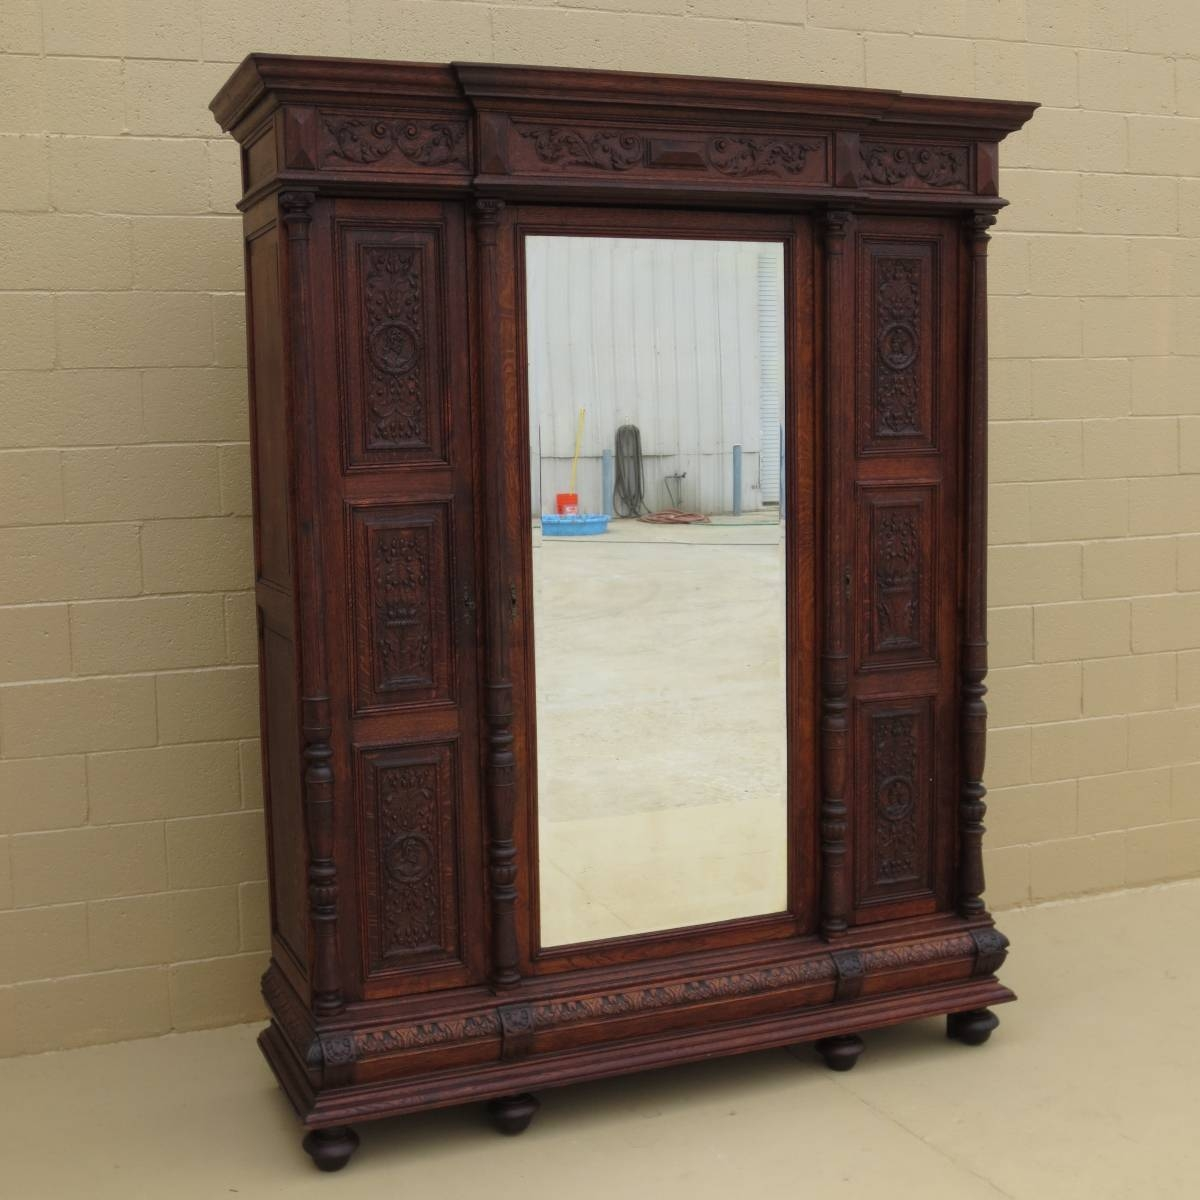 Antique Armoires, Antique Wardrobes, And Antique Furniture From pertaining to Large Antique Wardrobes (Image 3 of 15)